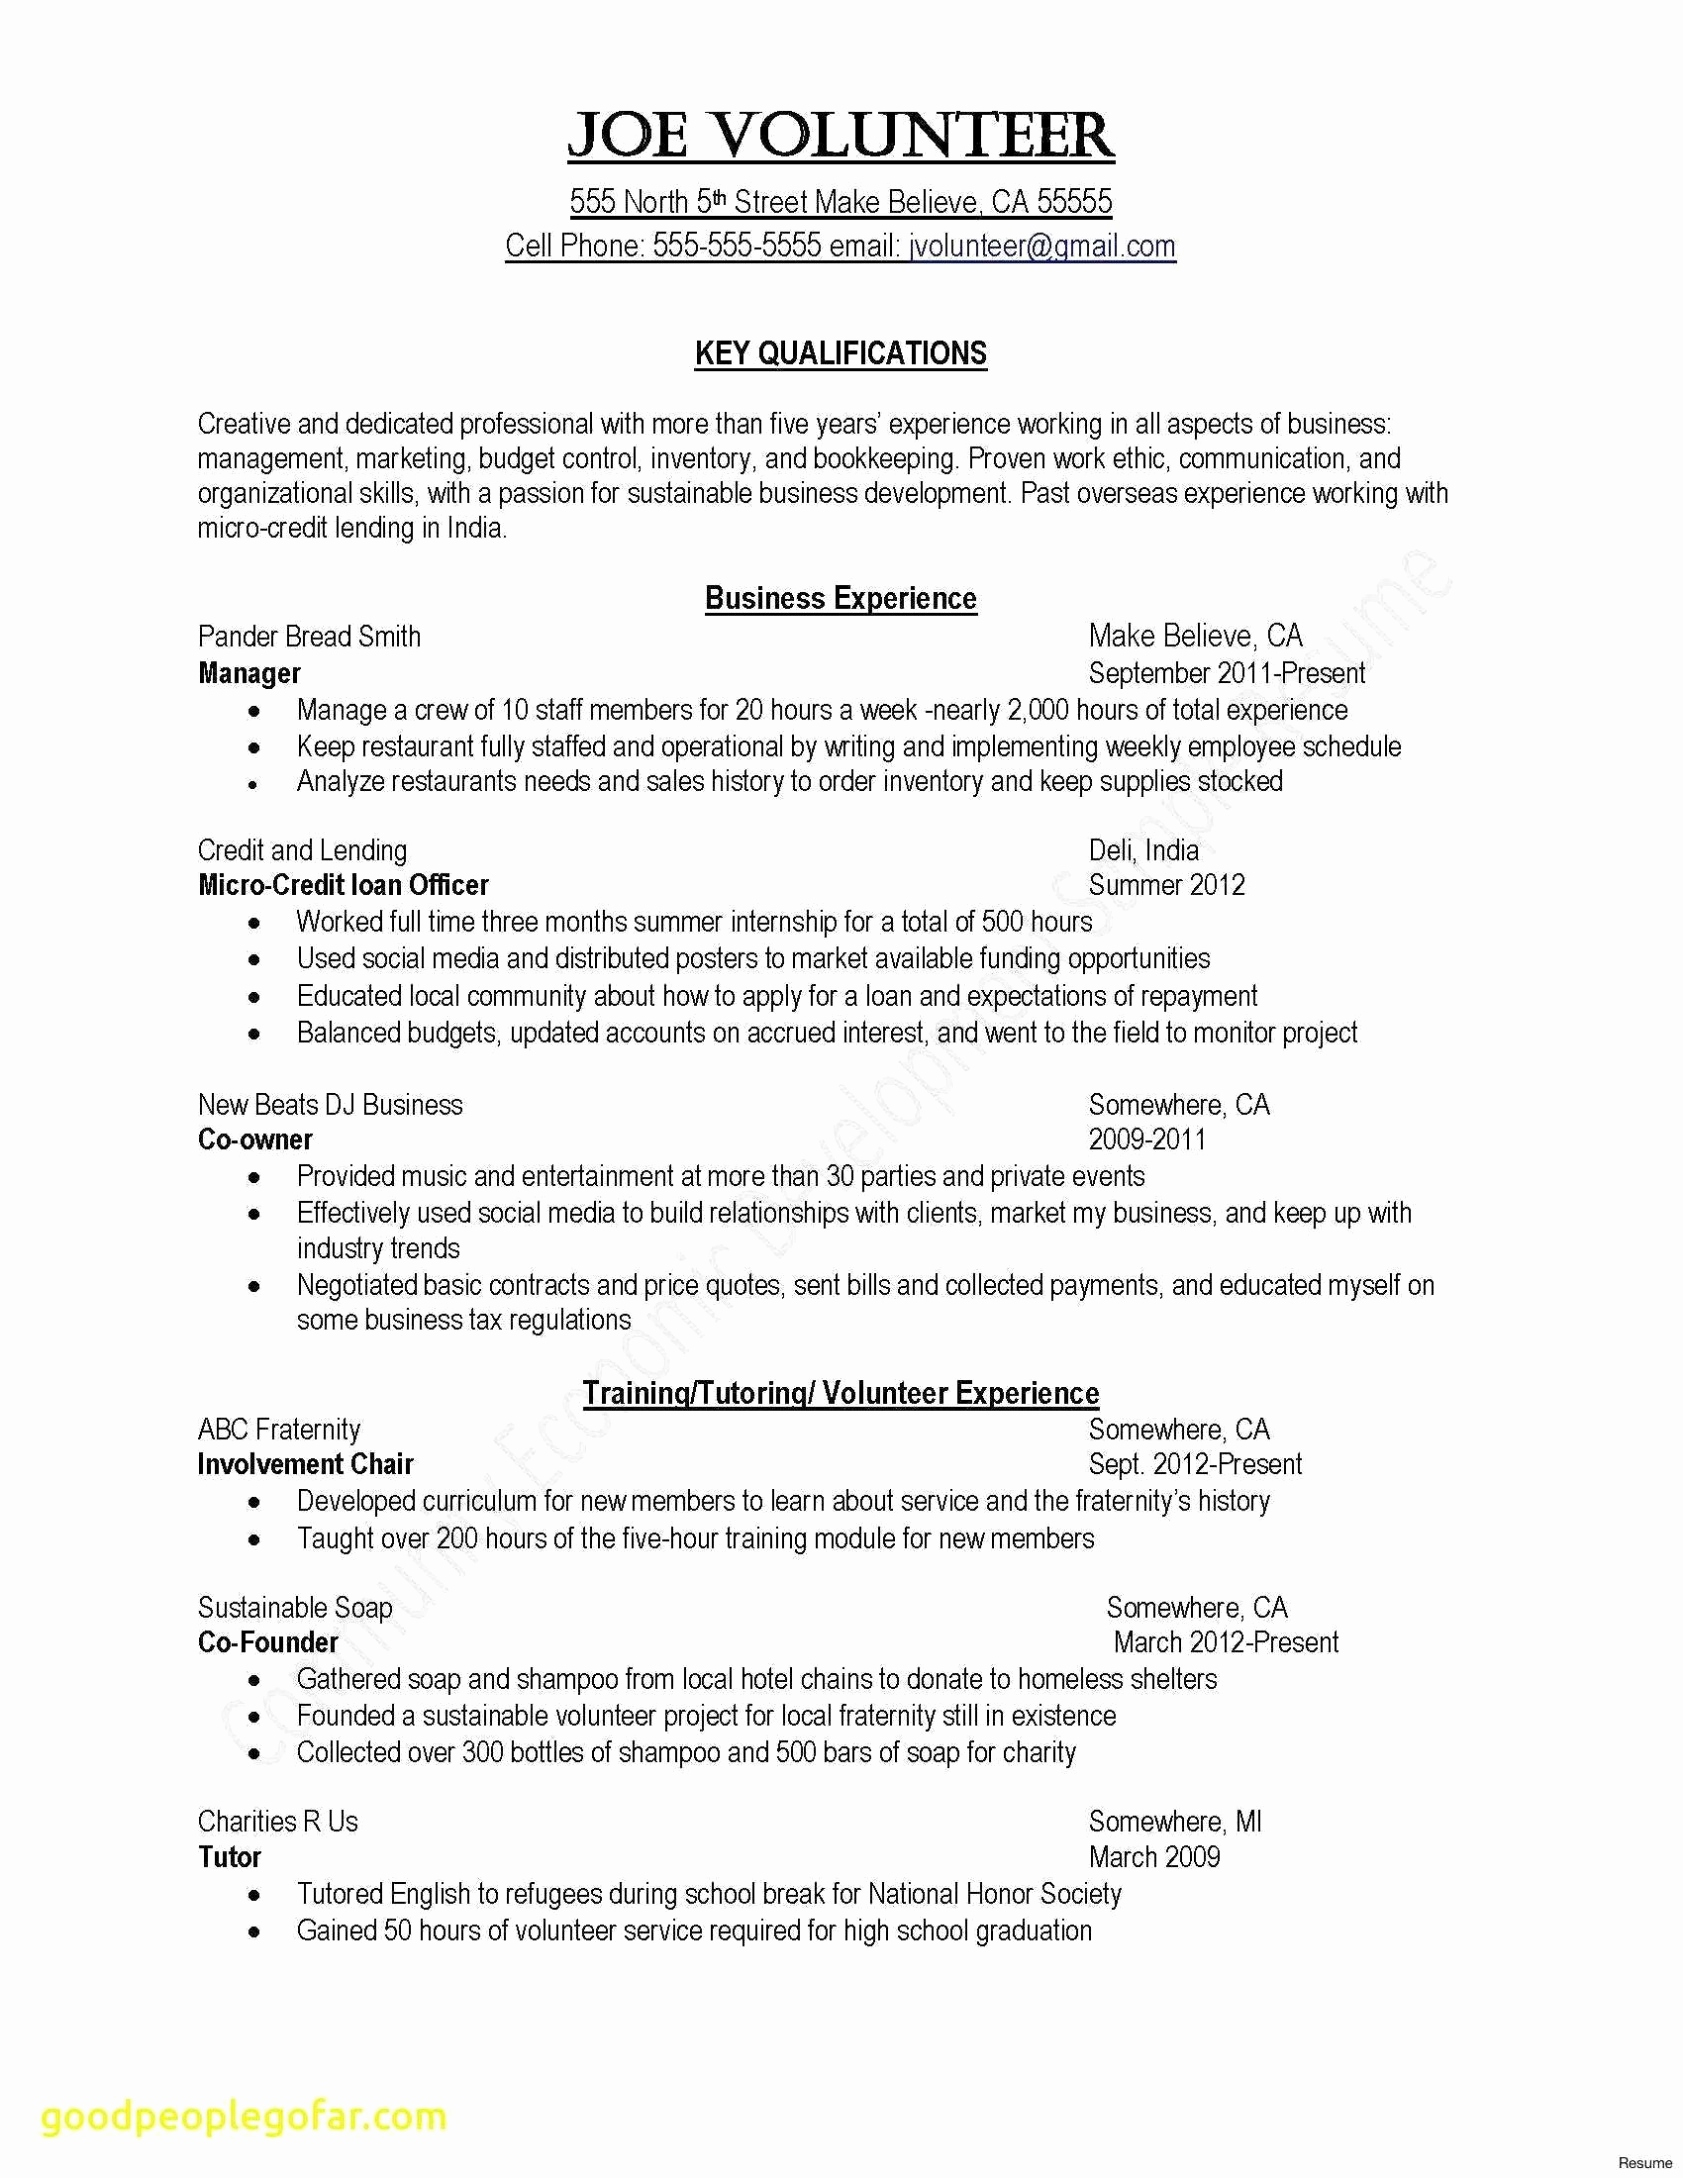 Office Equipment List for Resume - Fice Supplies Inventory Template Awesome Medical Fice Inventory